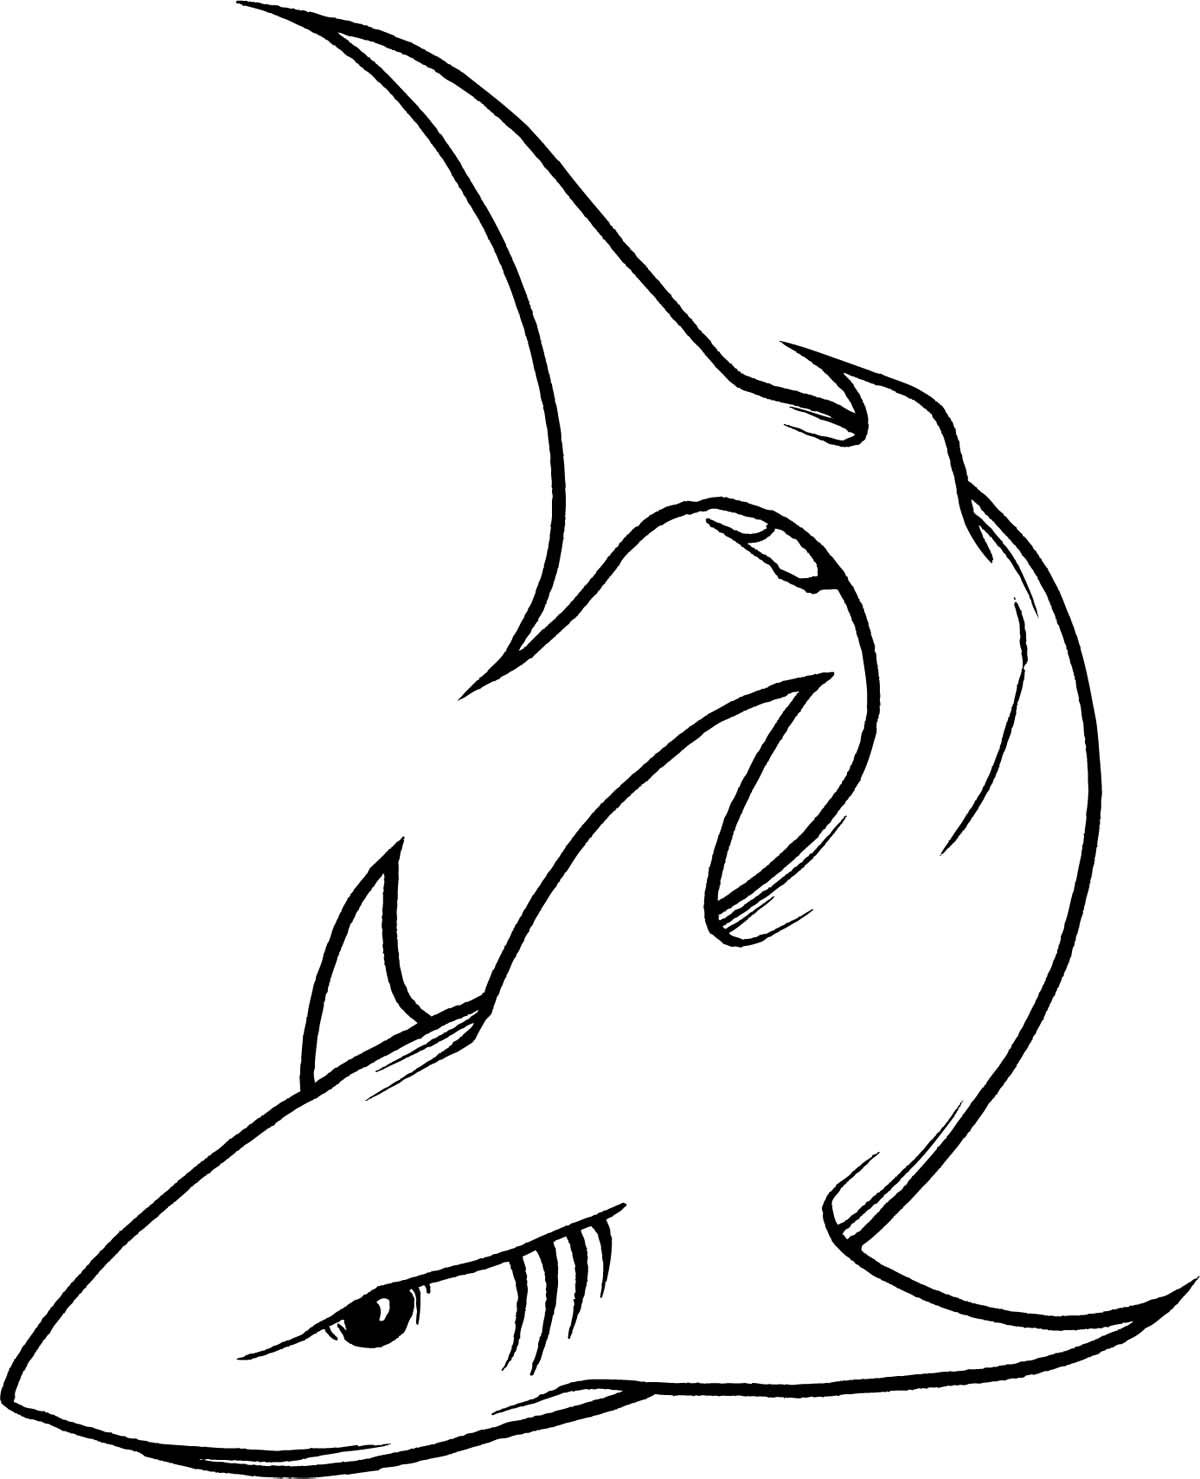 small resolution of hammerhead shark outline clipart panda free clipart images